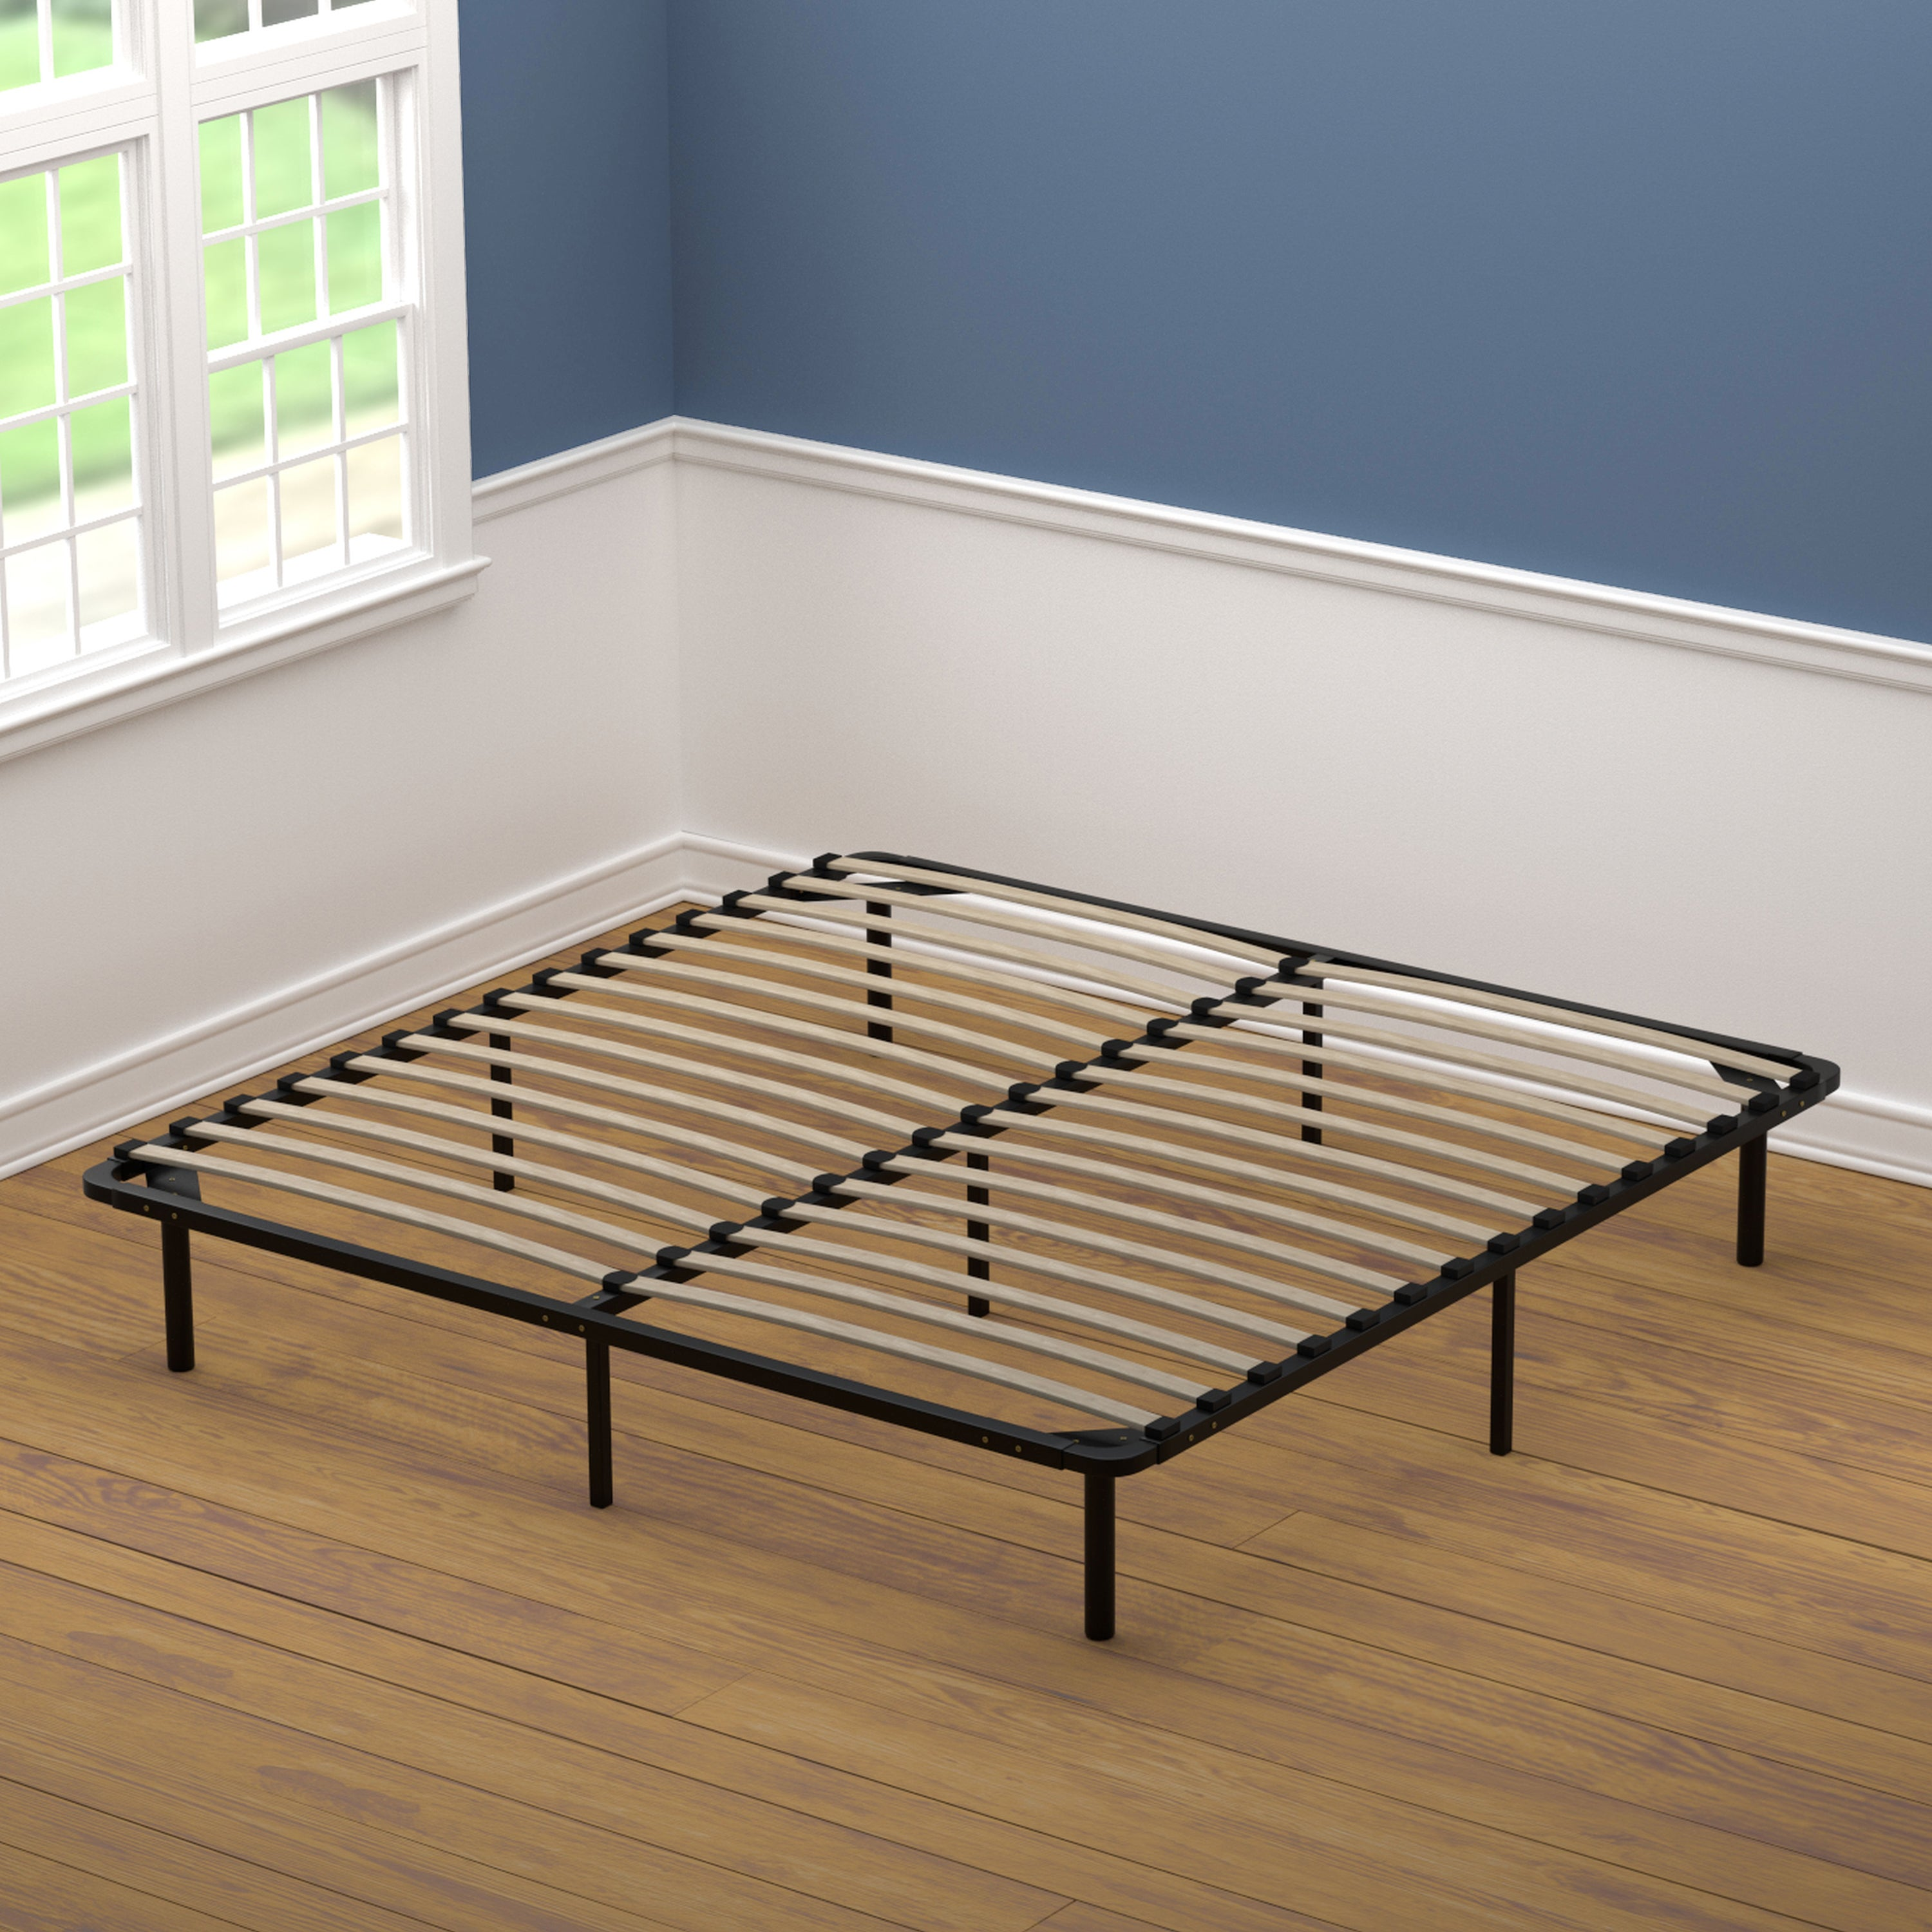 Shop Handy Living King Size Wood Slat Bed Frame Free Shipping